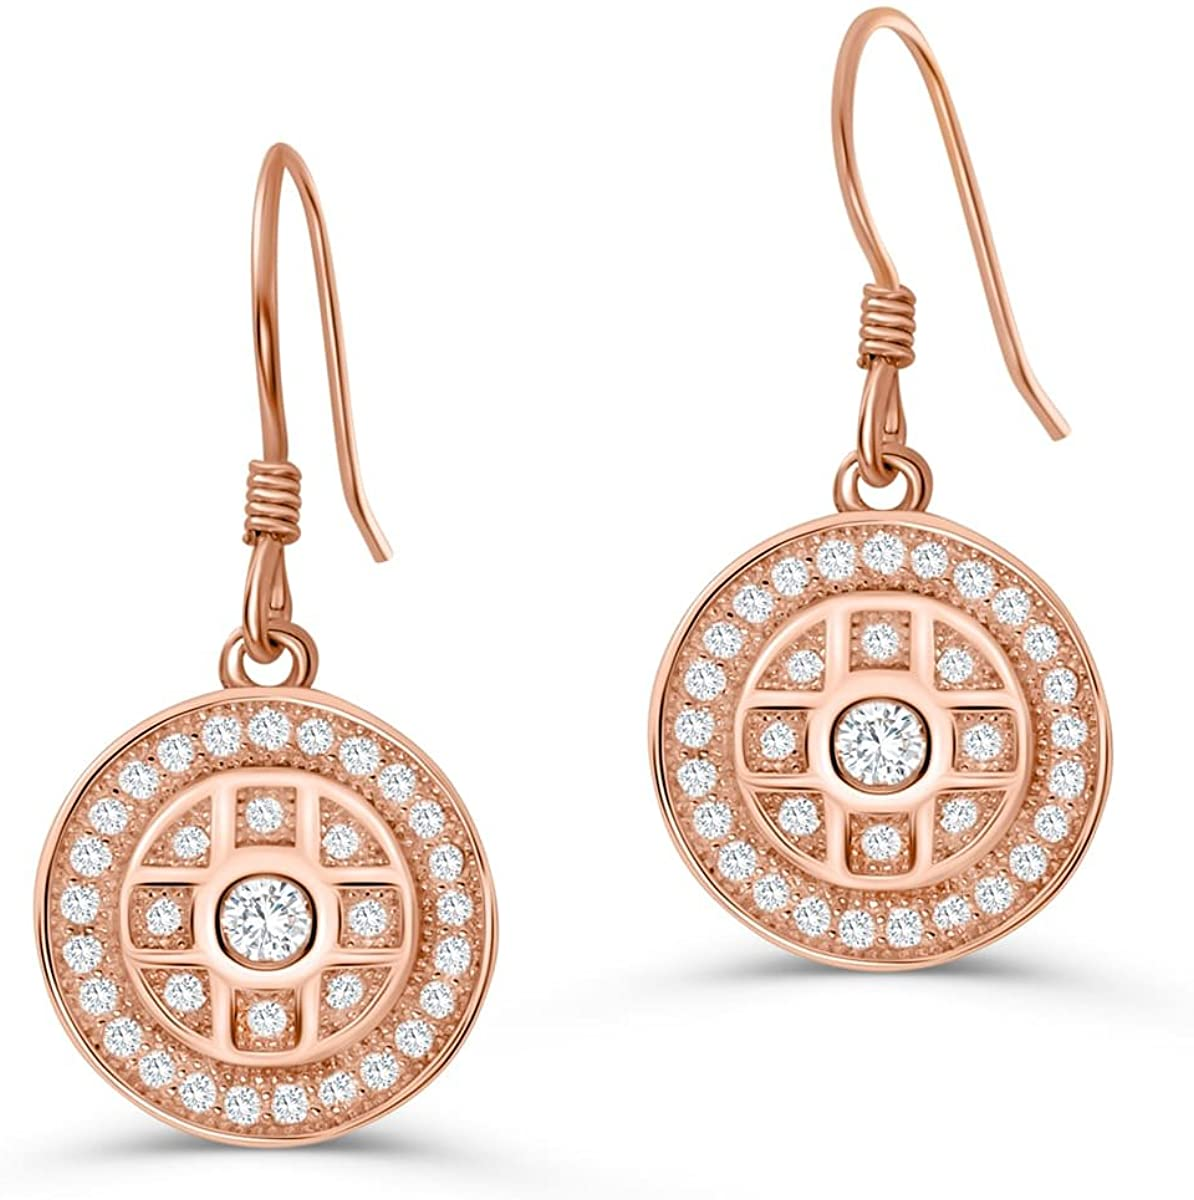 PRJewel Rose Gold Plated Sterling Silver Pave CZ Drop Earrings